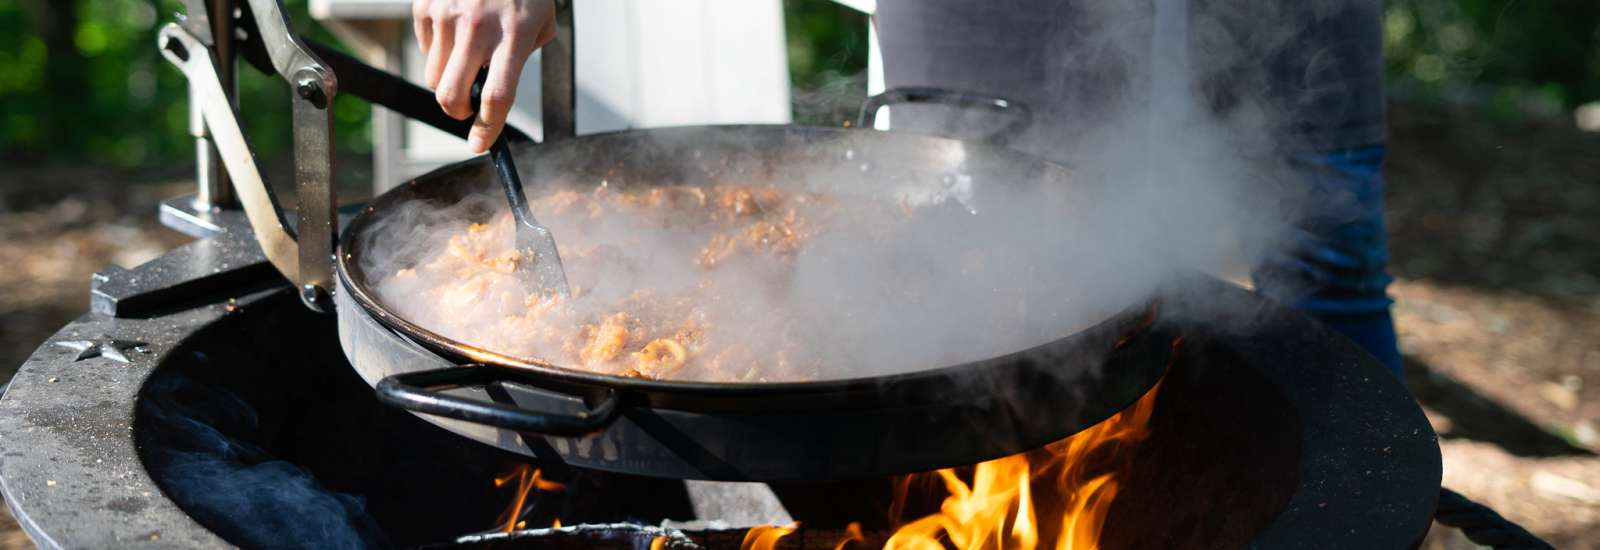 Paella cooking over a grill